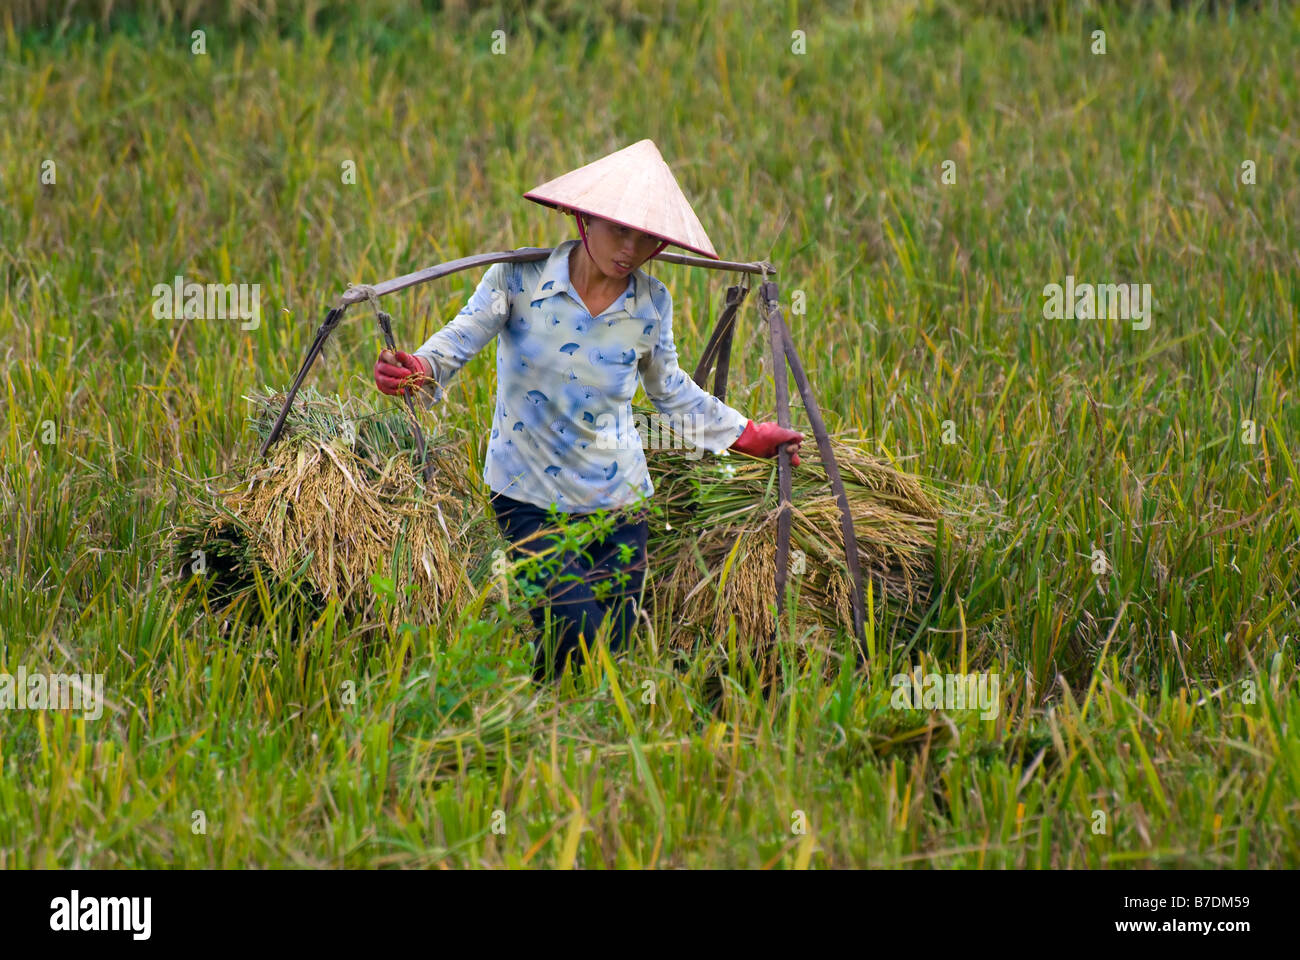 rice in vietnam Vietnam 5% broken rice price historical data, charts, stats and more vietnam 5% broken rice price is at a current level of 39543, up from 38094 last month and up.